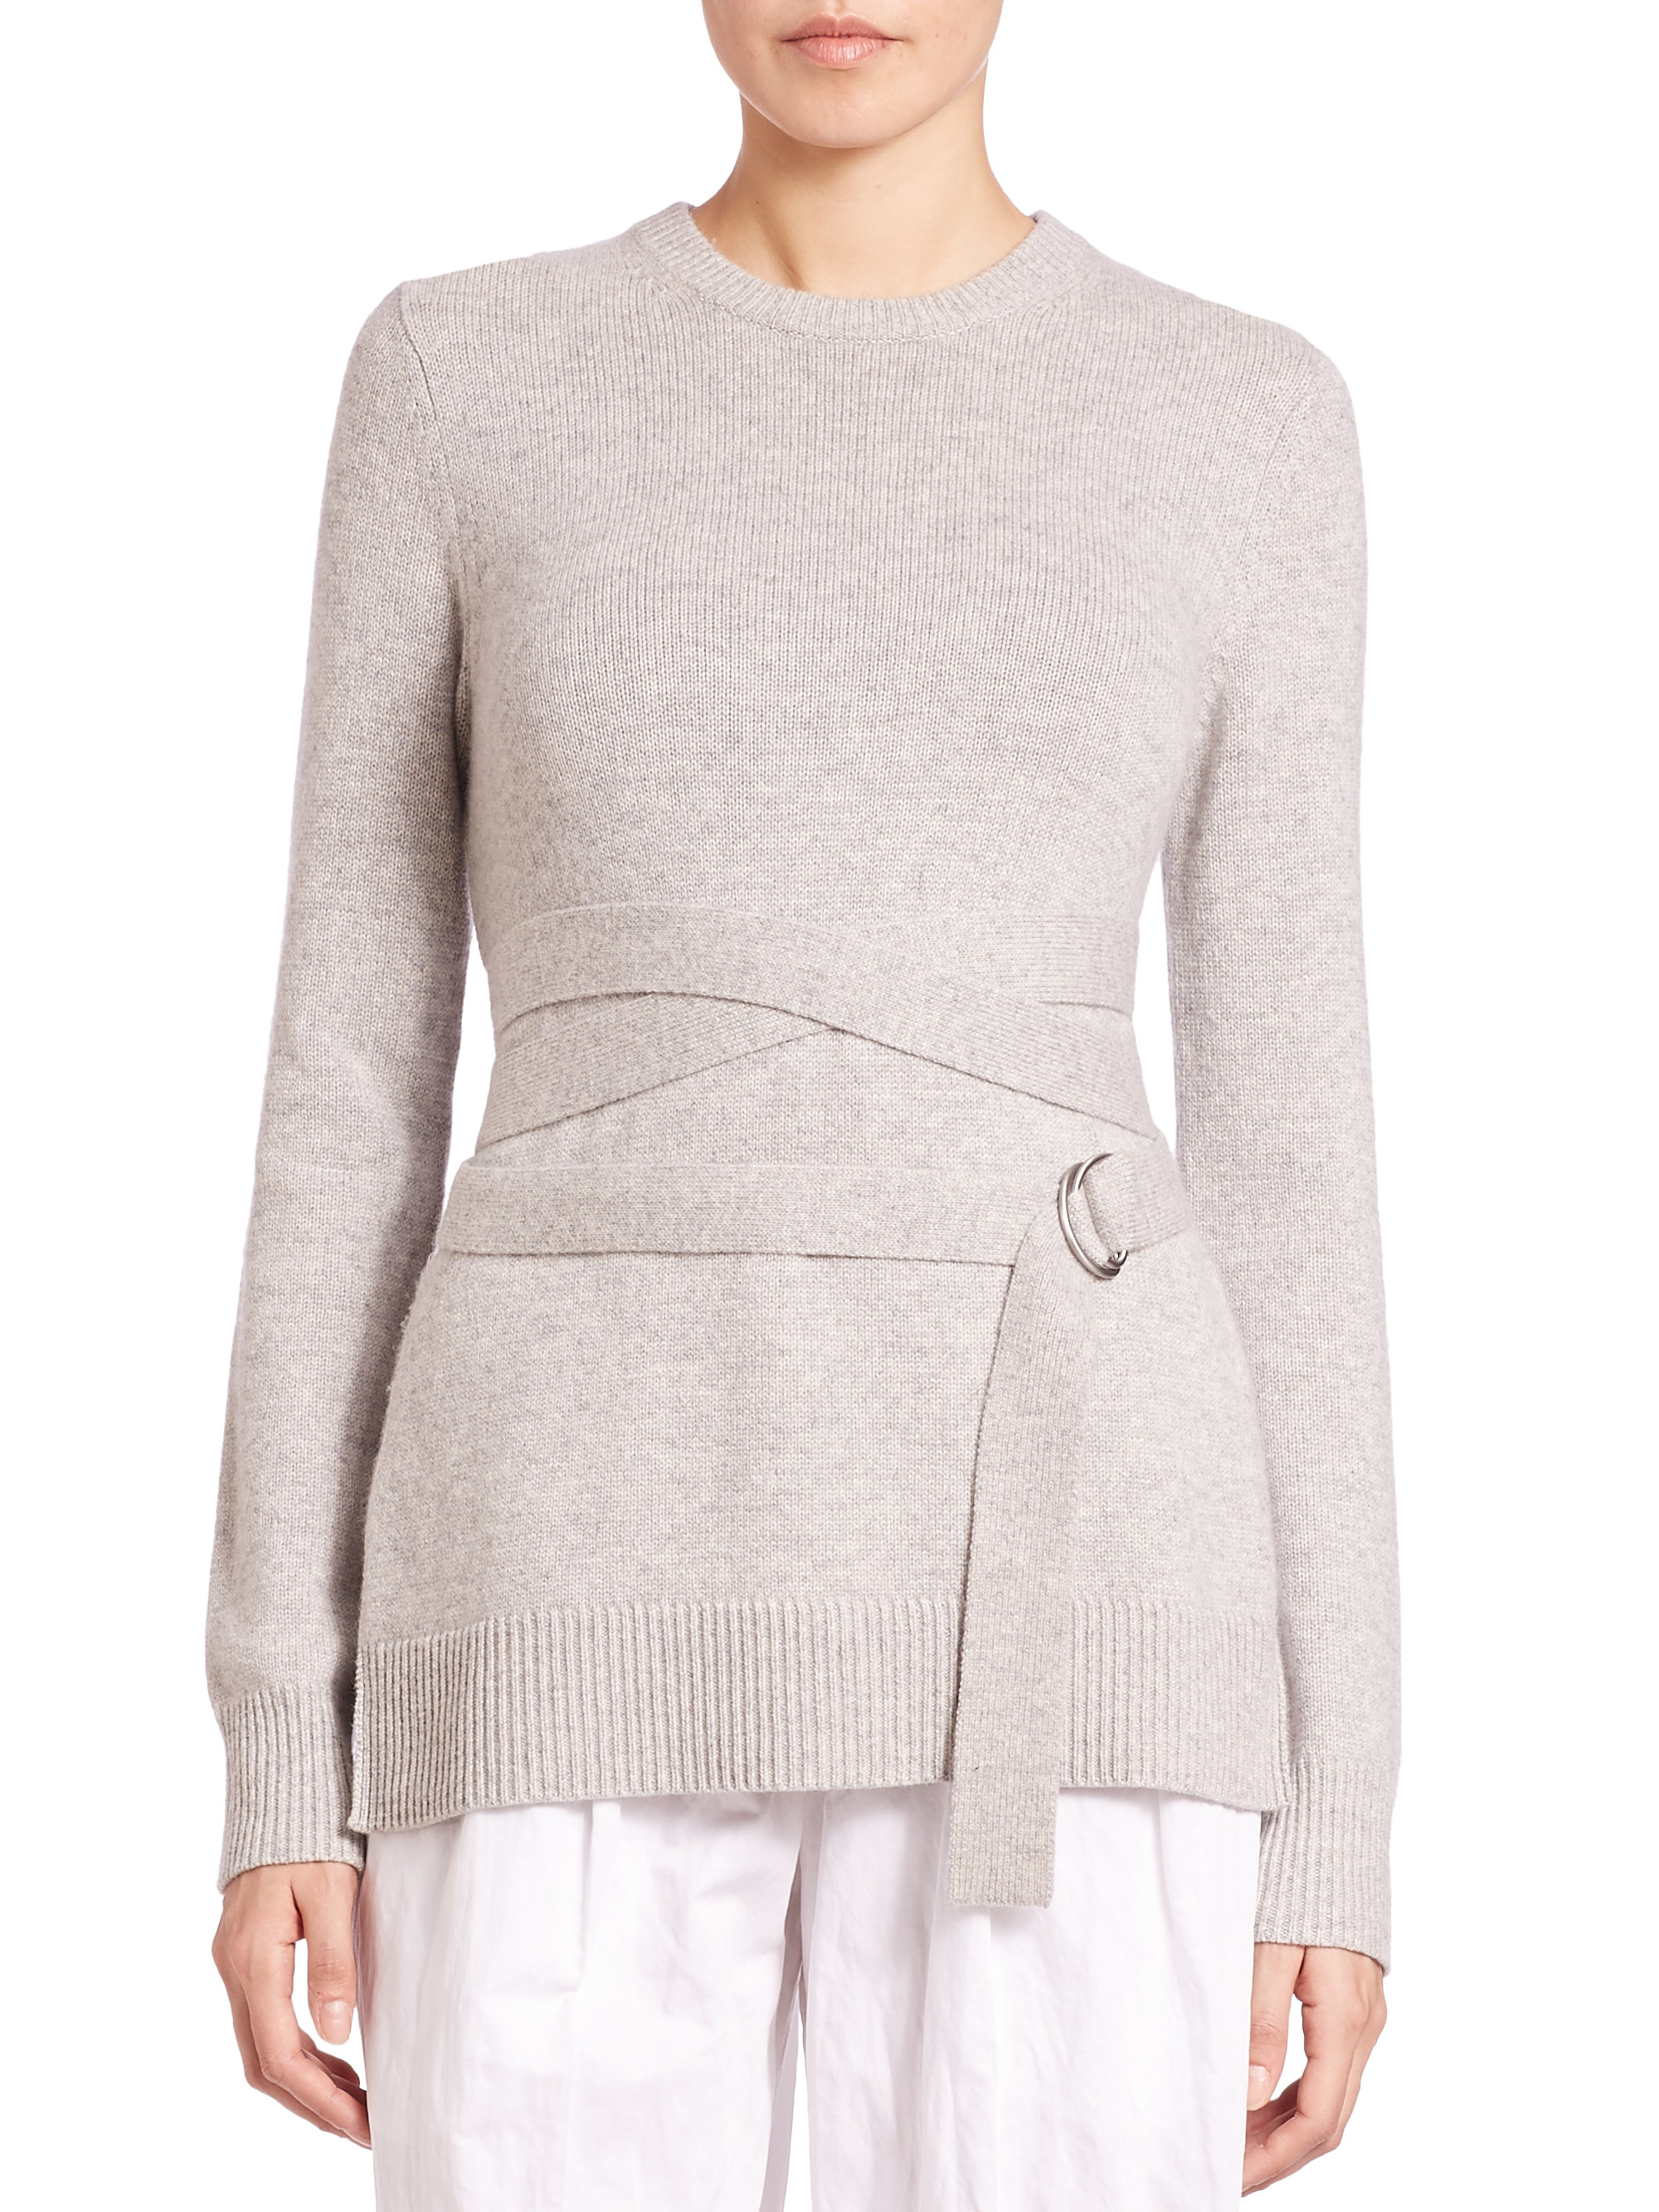 Lyst - Michael Kors Belted Cashmere Sweater in Gray 312a2ba3c